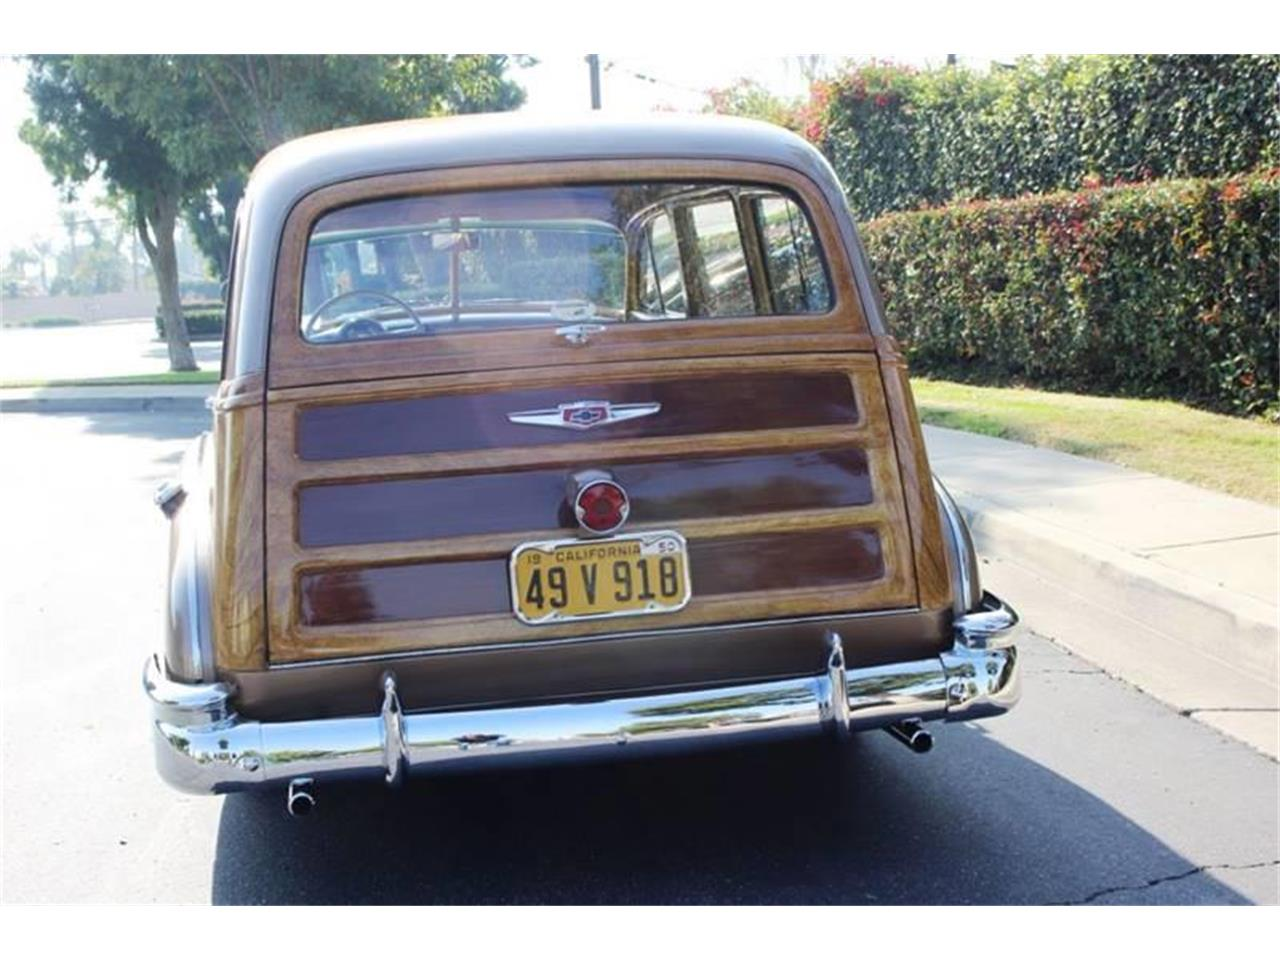 1950 Chevrolet Styleline Deluxe for sale in La Verne, CA – photo 7